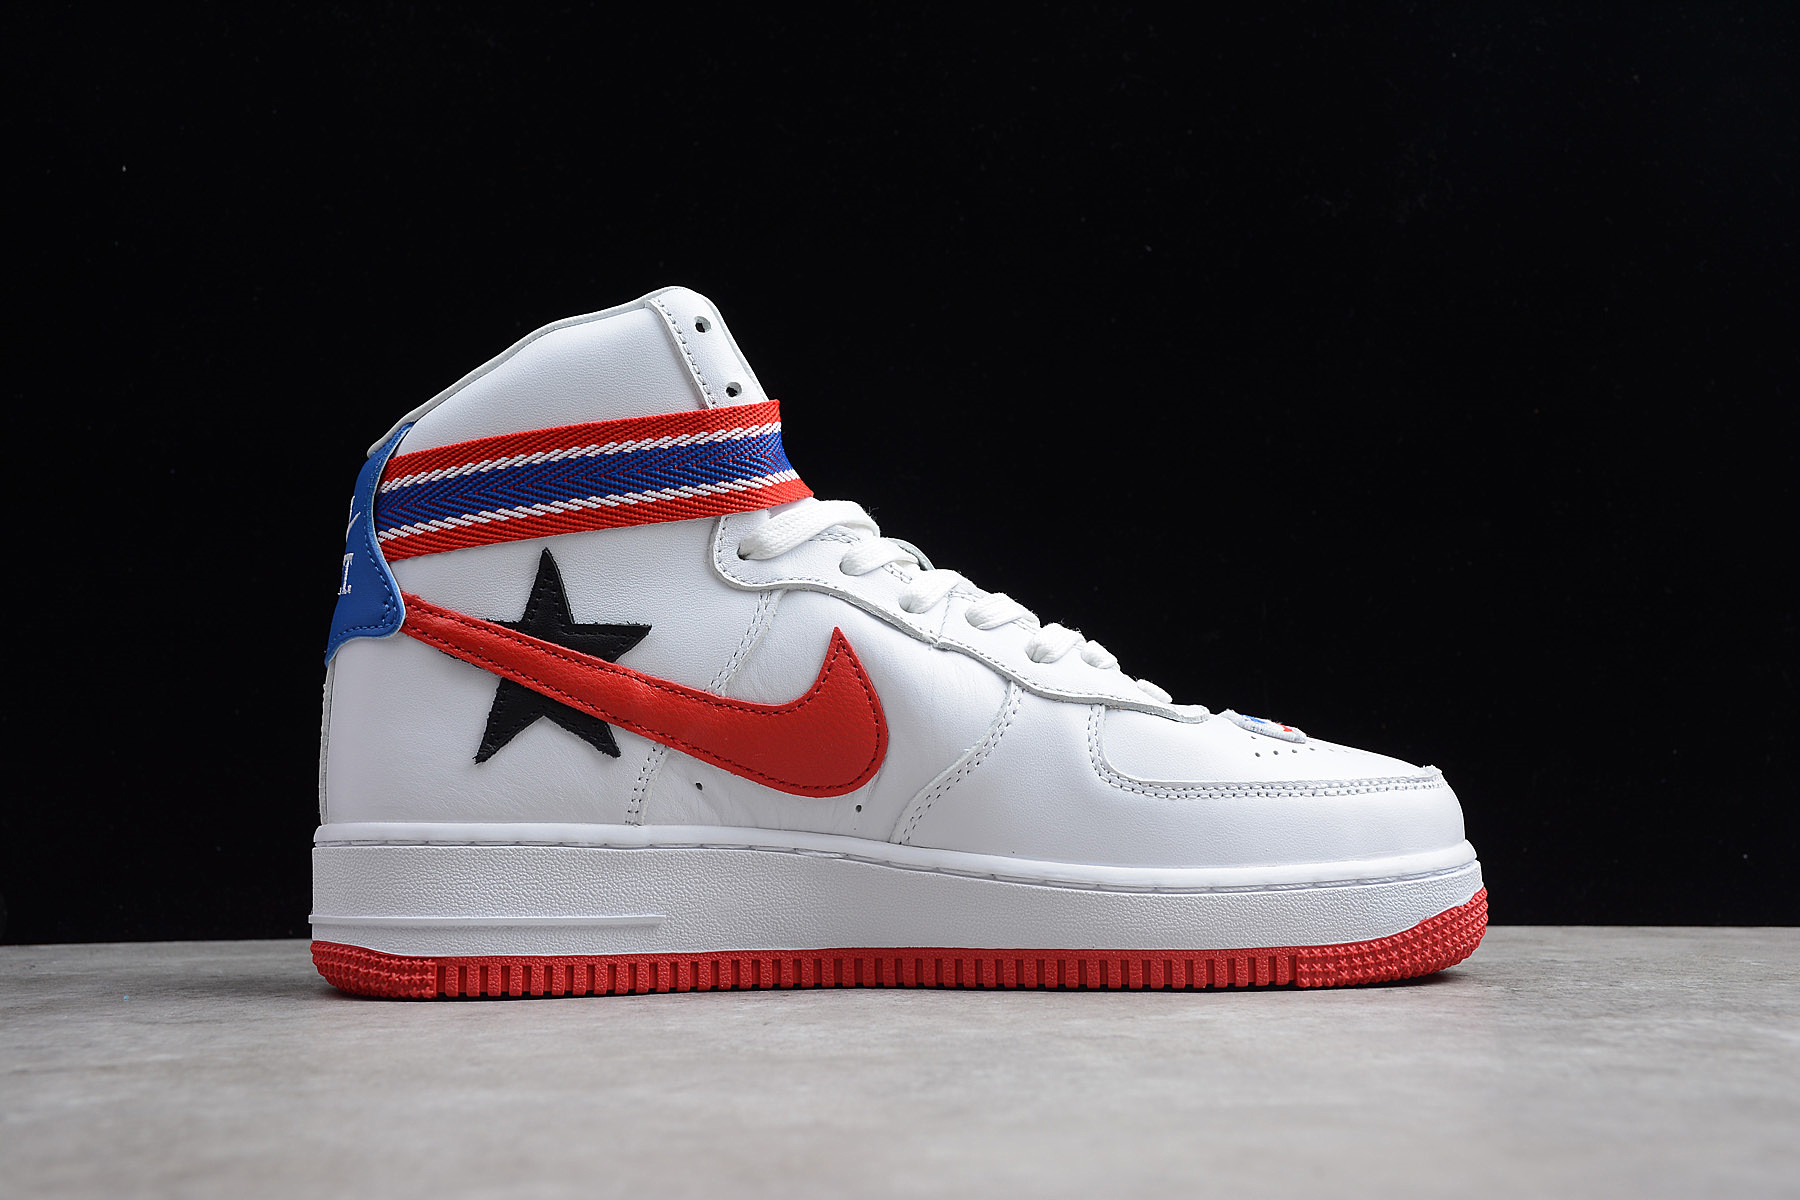 Nike Air Force 1 High White University Red Black Aq3366 100 New